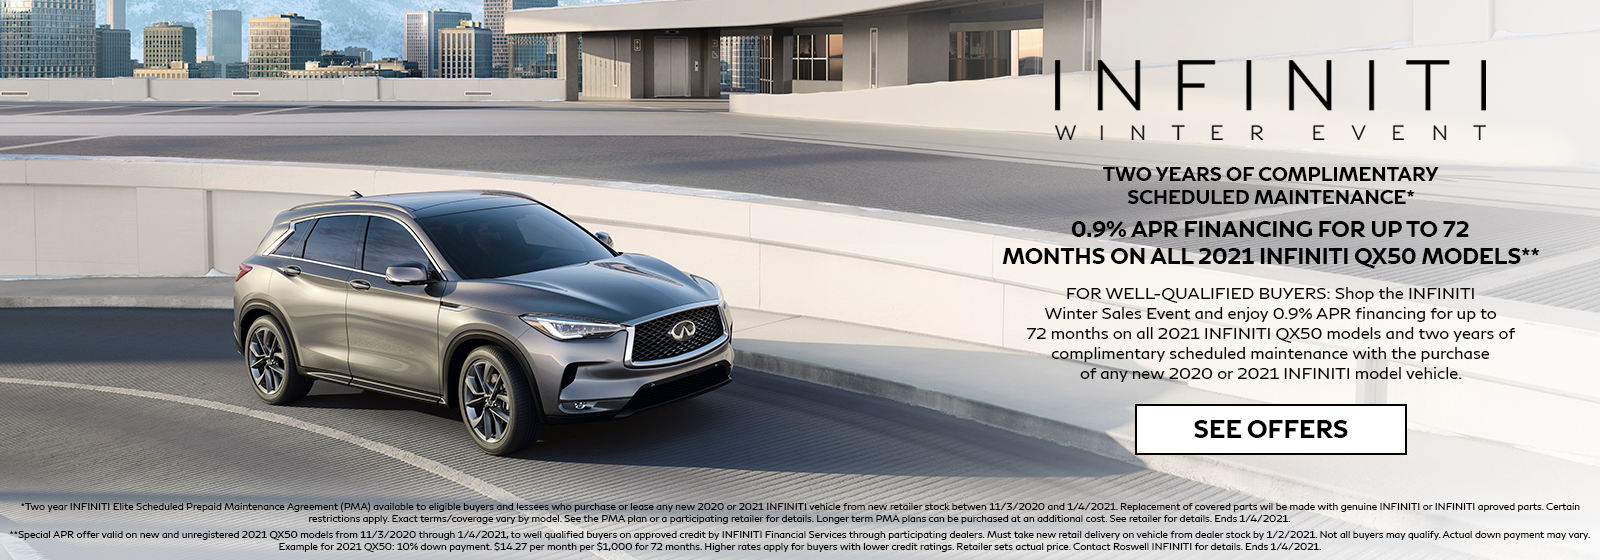 0.9% APR for 72 months on 2021 INFINITI QX50